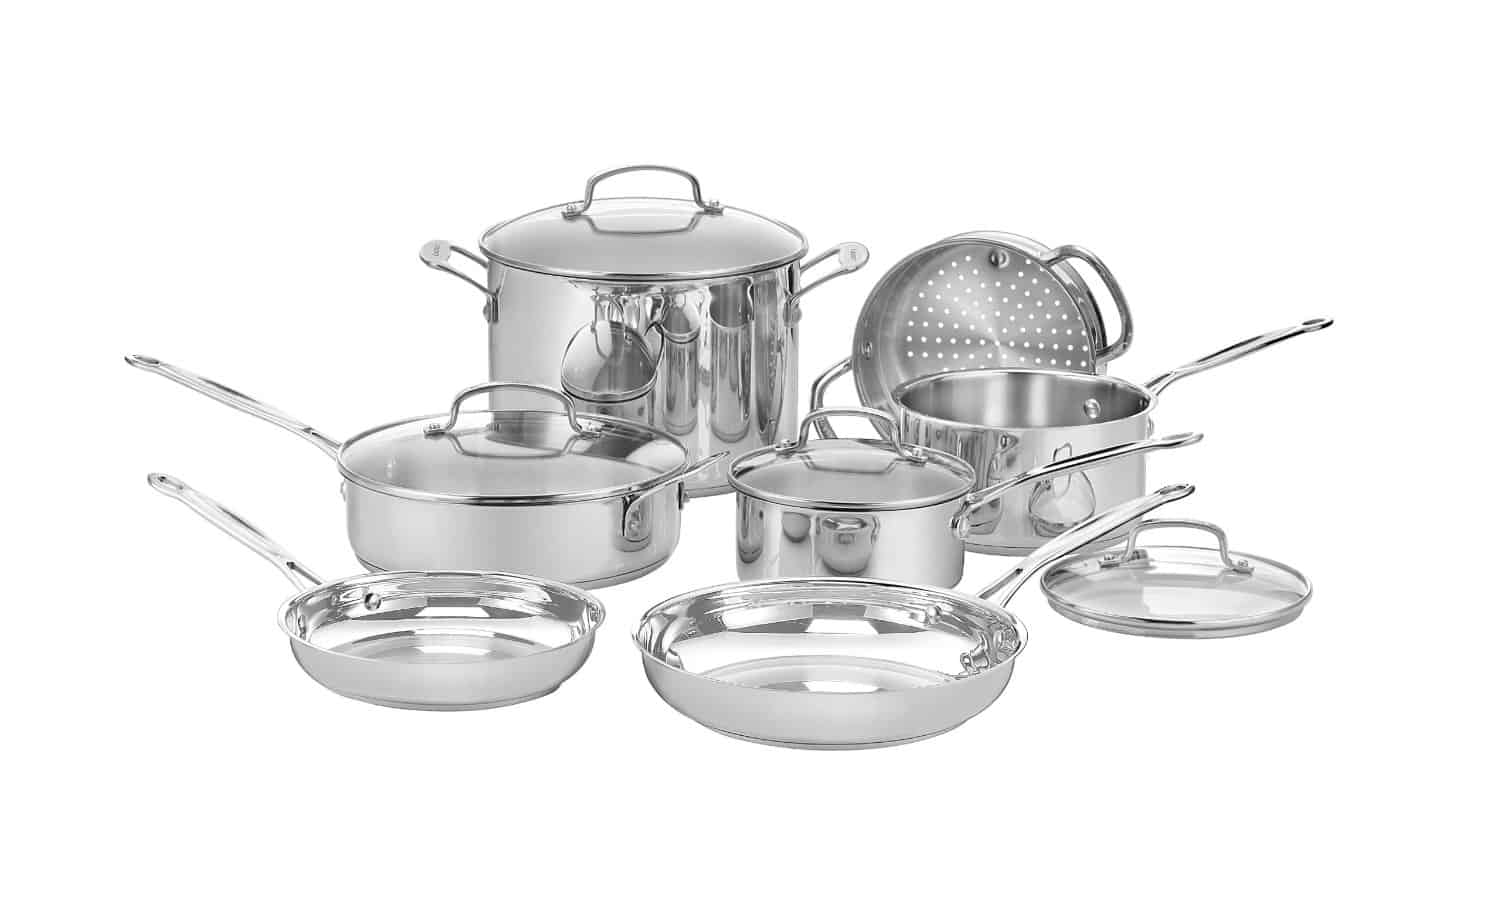 Kitchen-Musts-Cuisinart-Pots-Pans